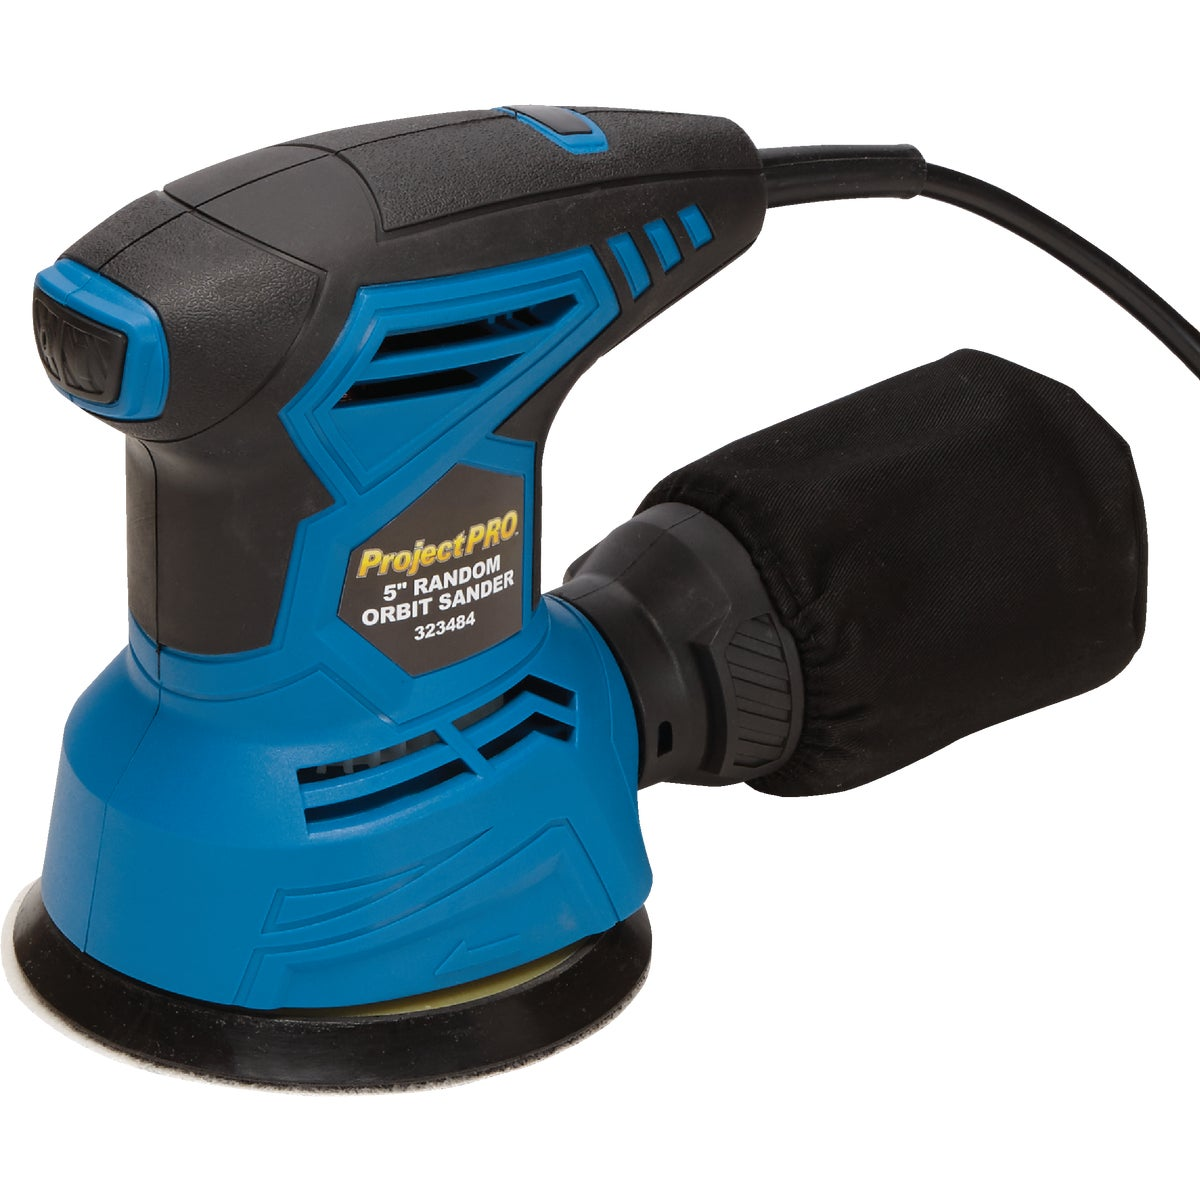 "5"" RANDOM ORBIT SANDER - 323484 by Do it Best"